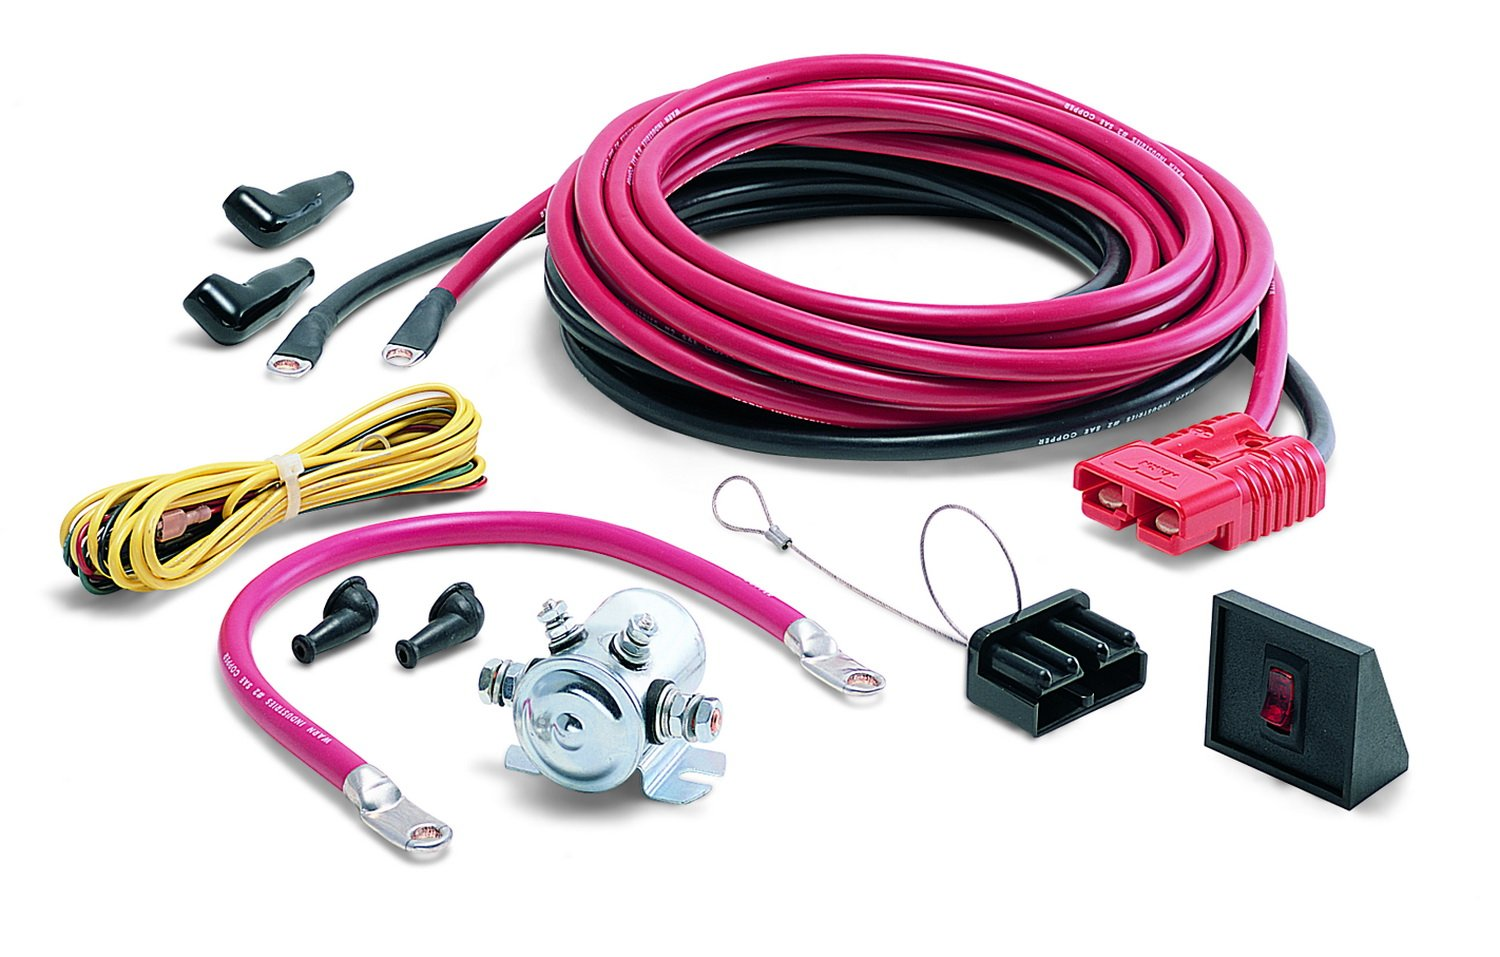 Warn 32966 24 Quick Connect Power Cable Automotive 10 000 Lb Winch Wiring Diagram